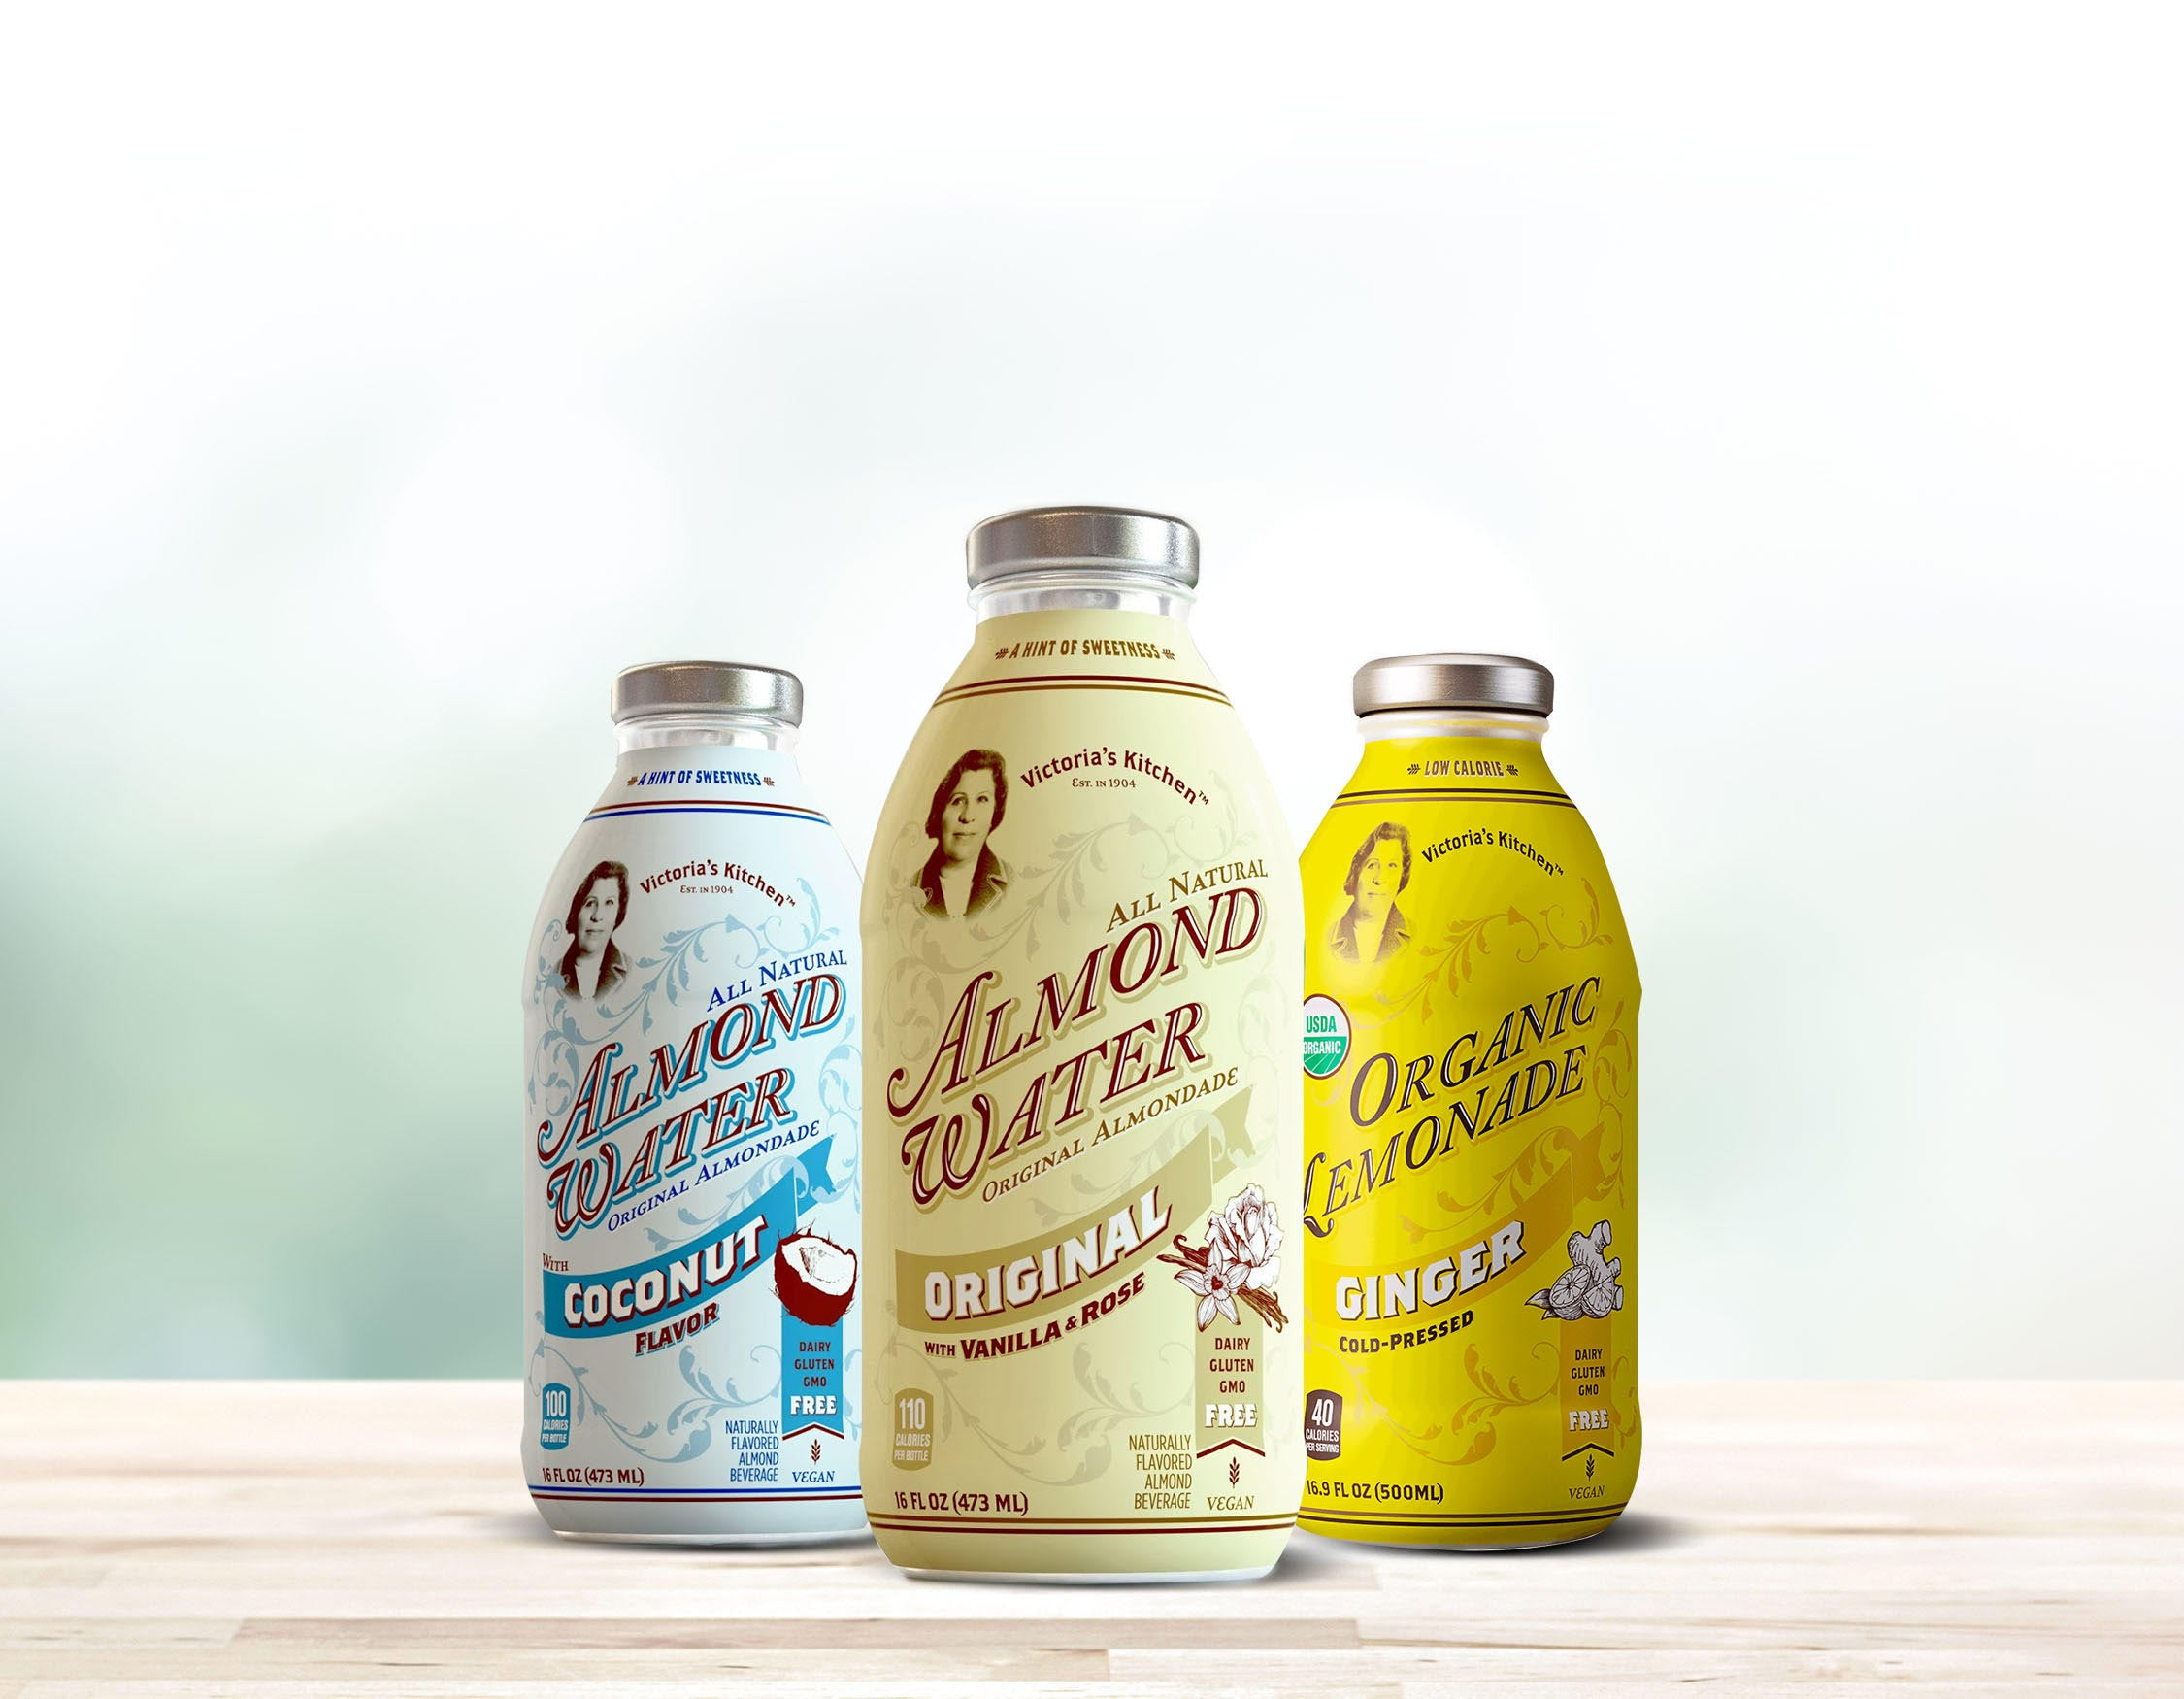 victorias kitchen is a specialty beverage brand producing all natural european inspired drinks the products include almond water organic ginger lemonade - Victorias Kitchen Almond Water